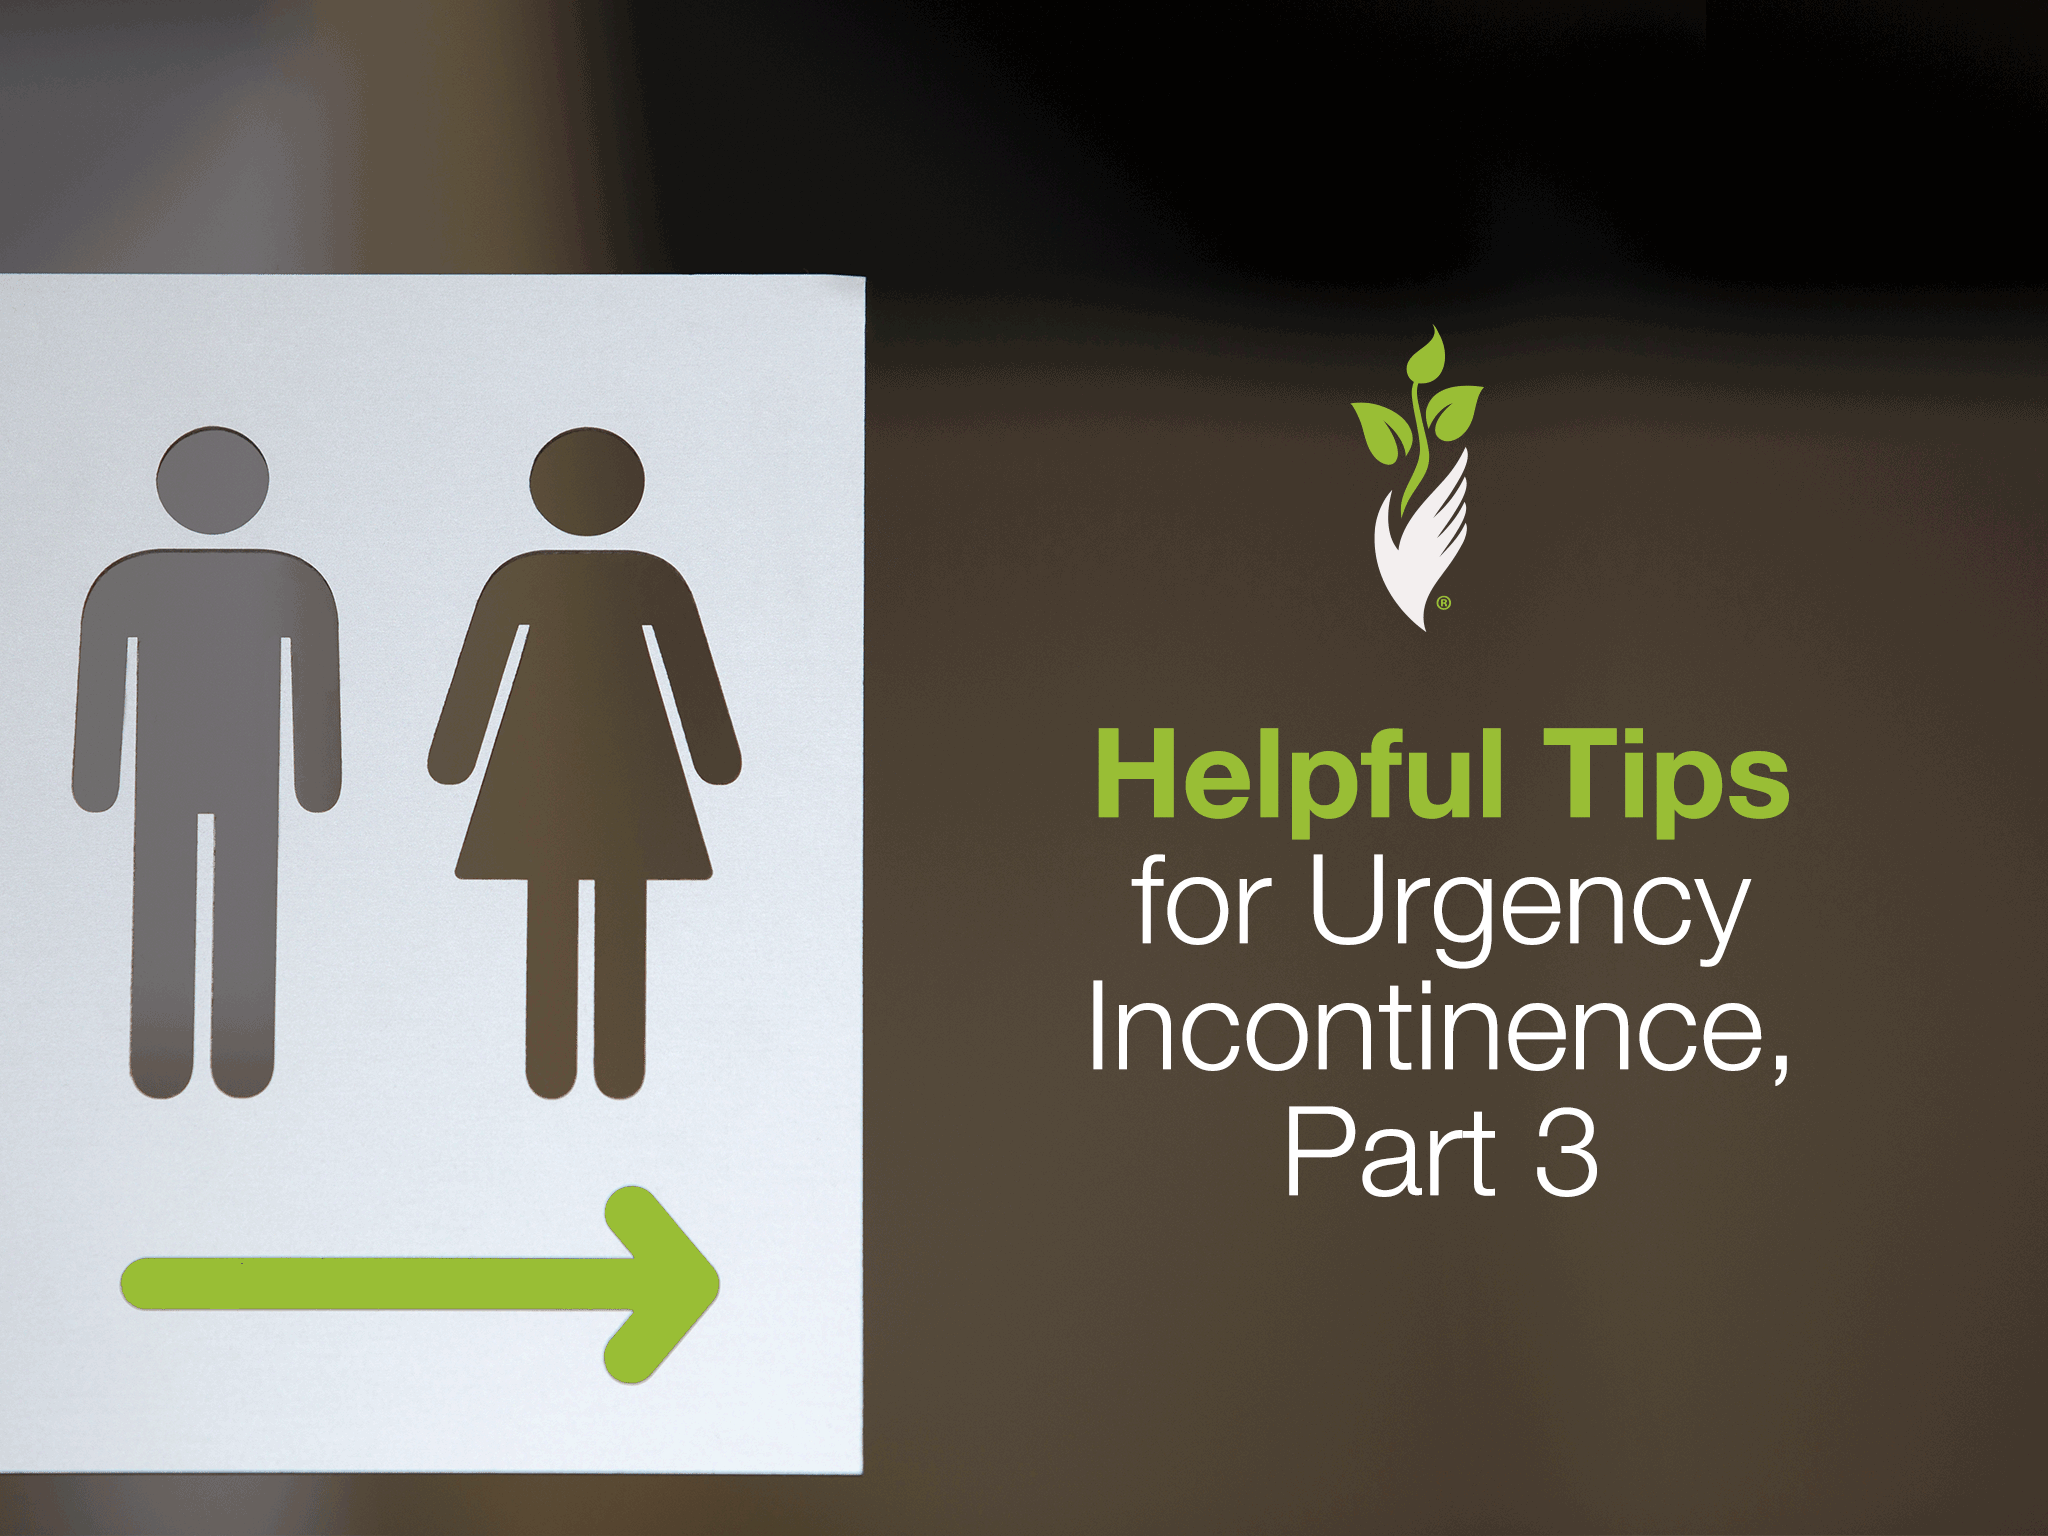 Helpful Tips for Urgency Incontinence, Part 3